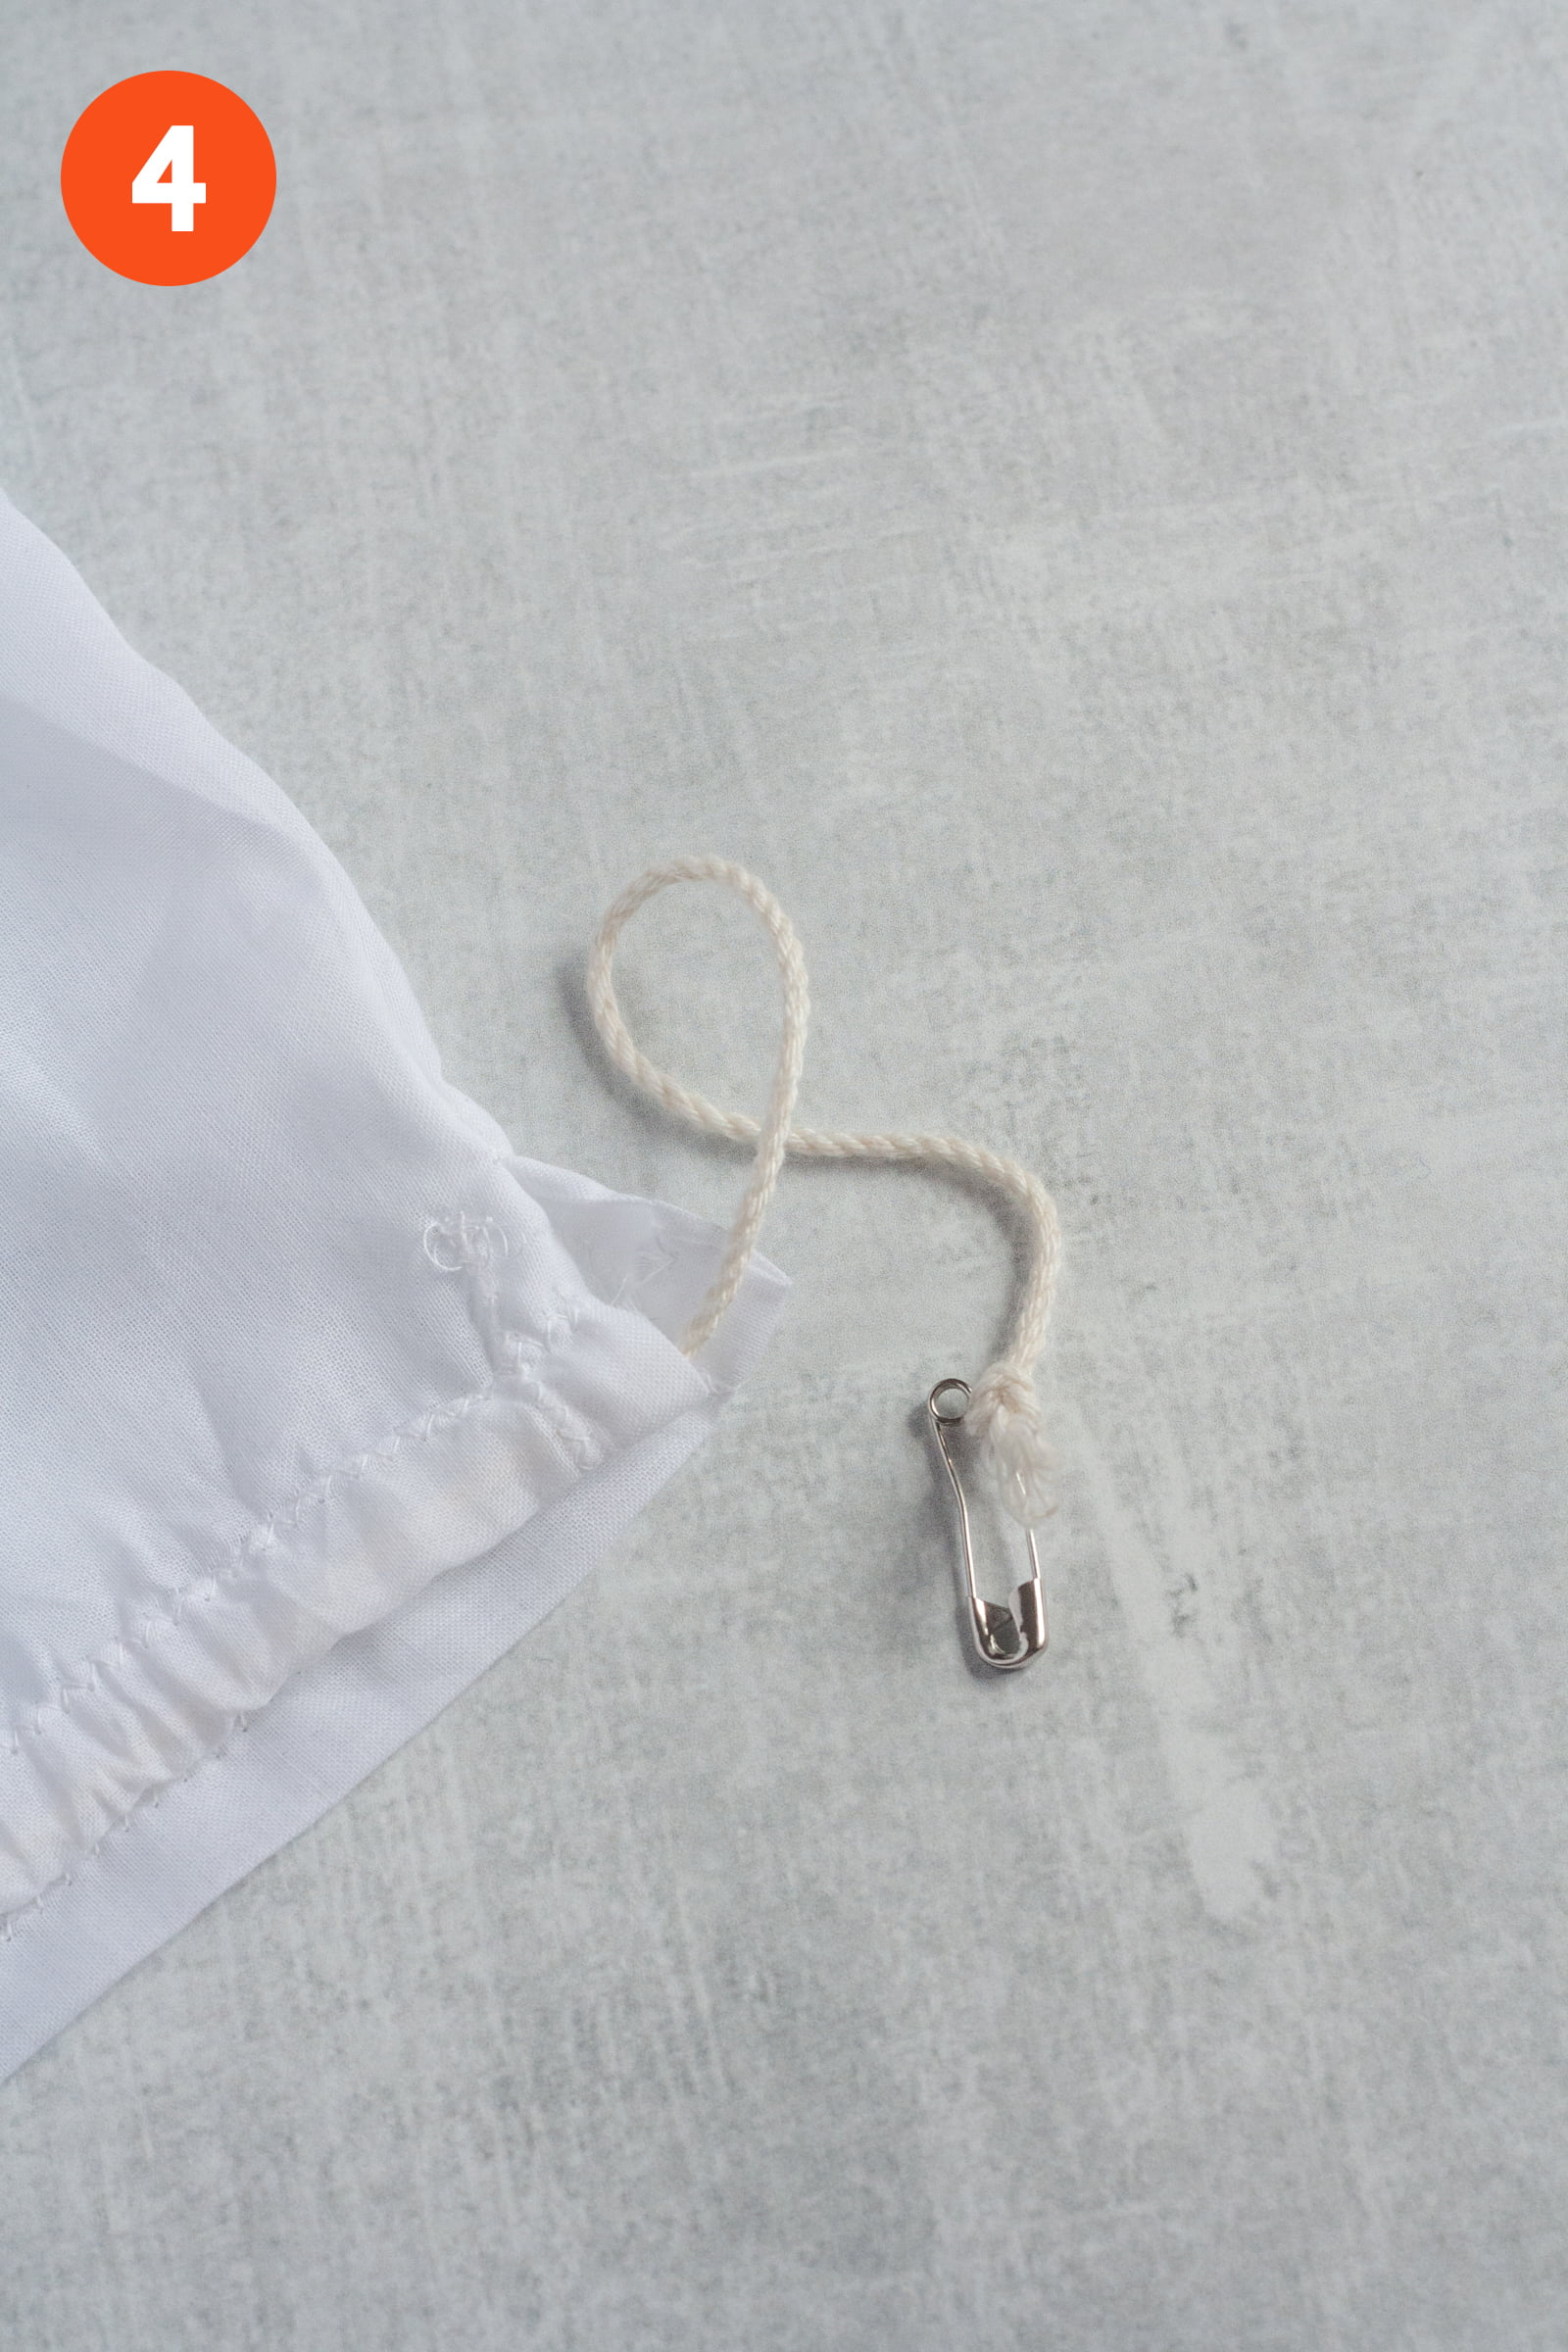 Safety pin with cording tied around it, to help thread the drawstring. Labeled with a 4.